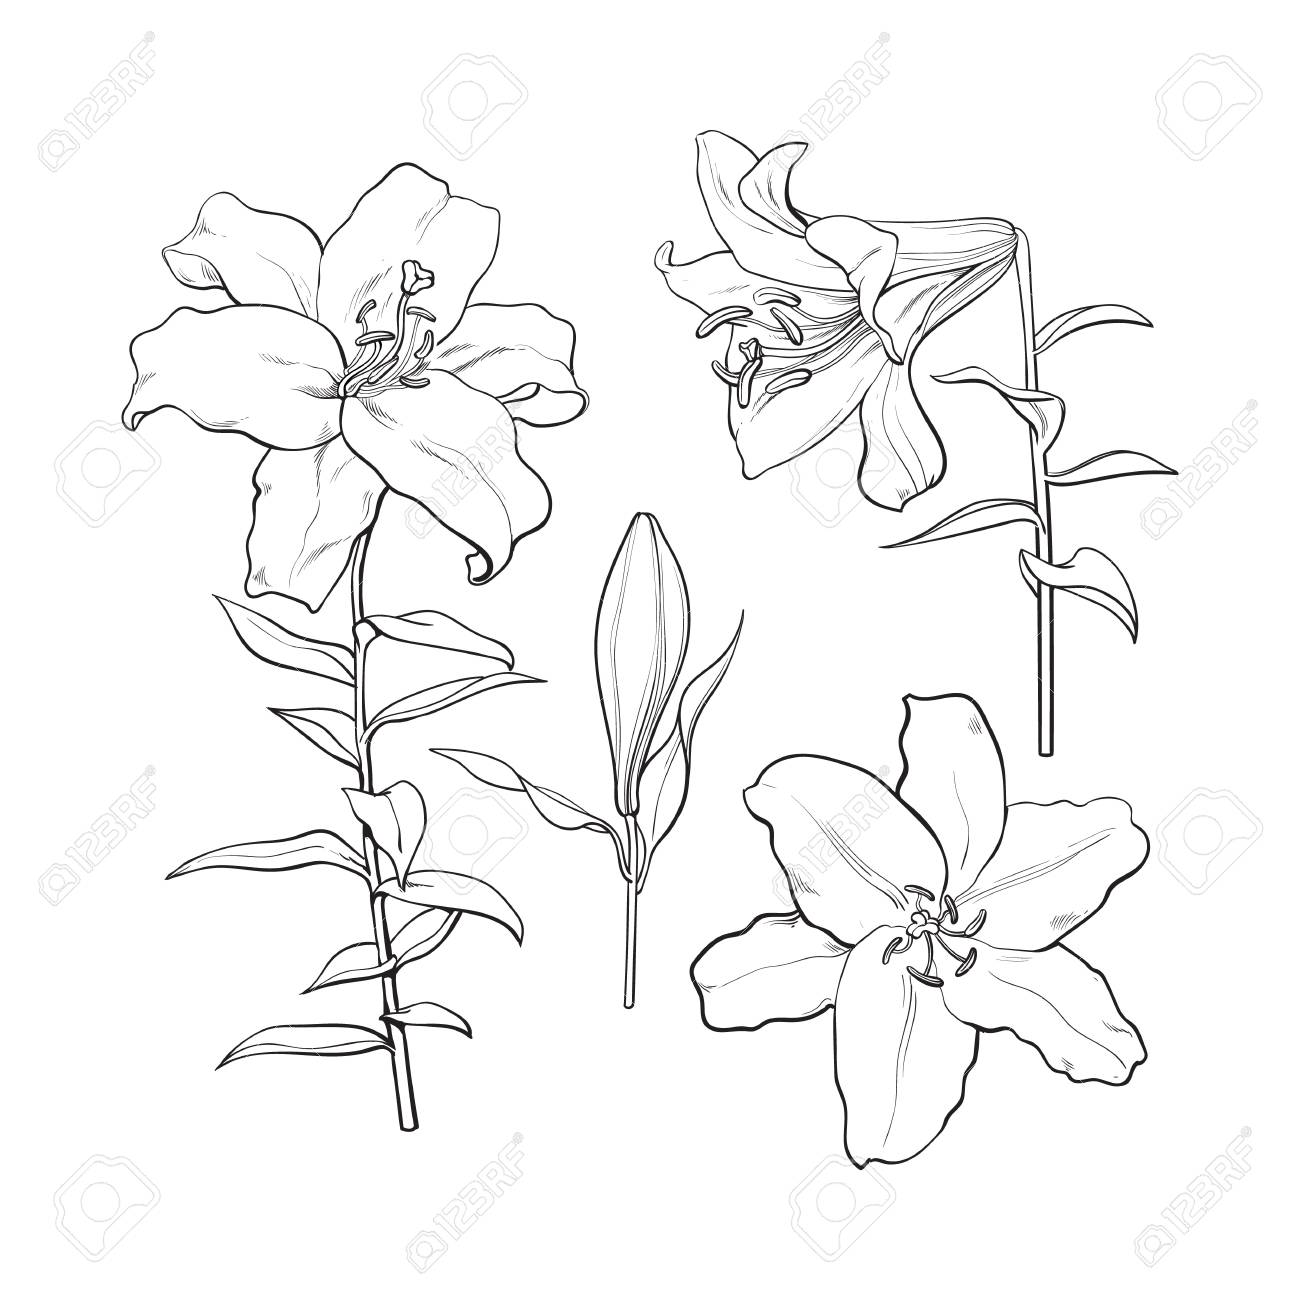 Set Of Hand Drawn White Lily Flowers In Side And Top View Sketch